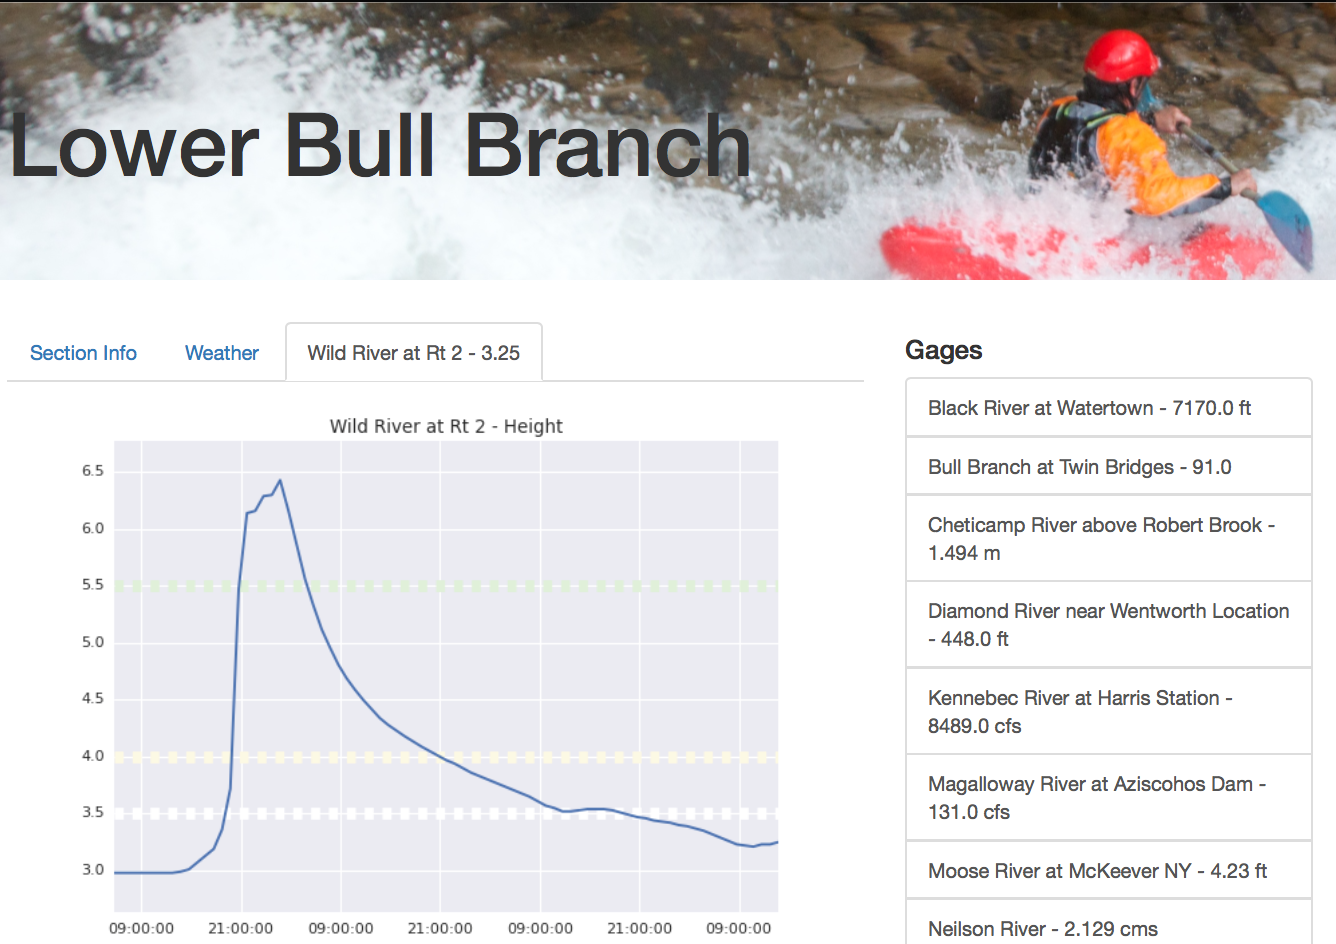 Screenshot of the Bull Branch correlation of the Wild River gage on Riverflo.ws